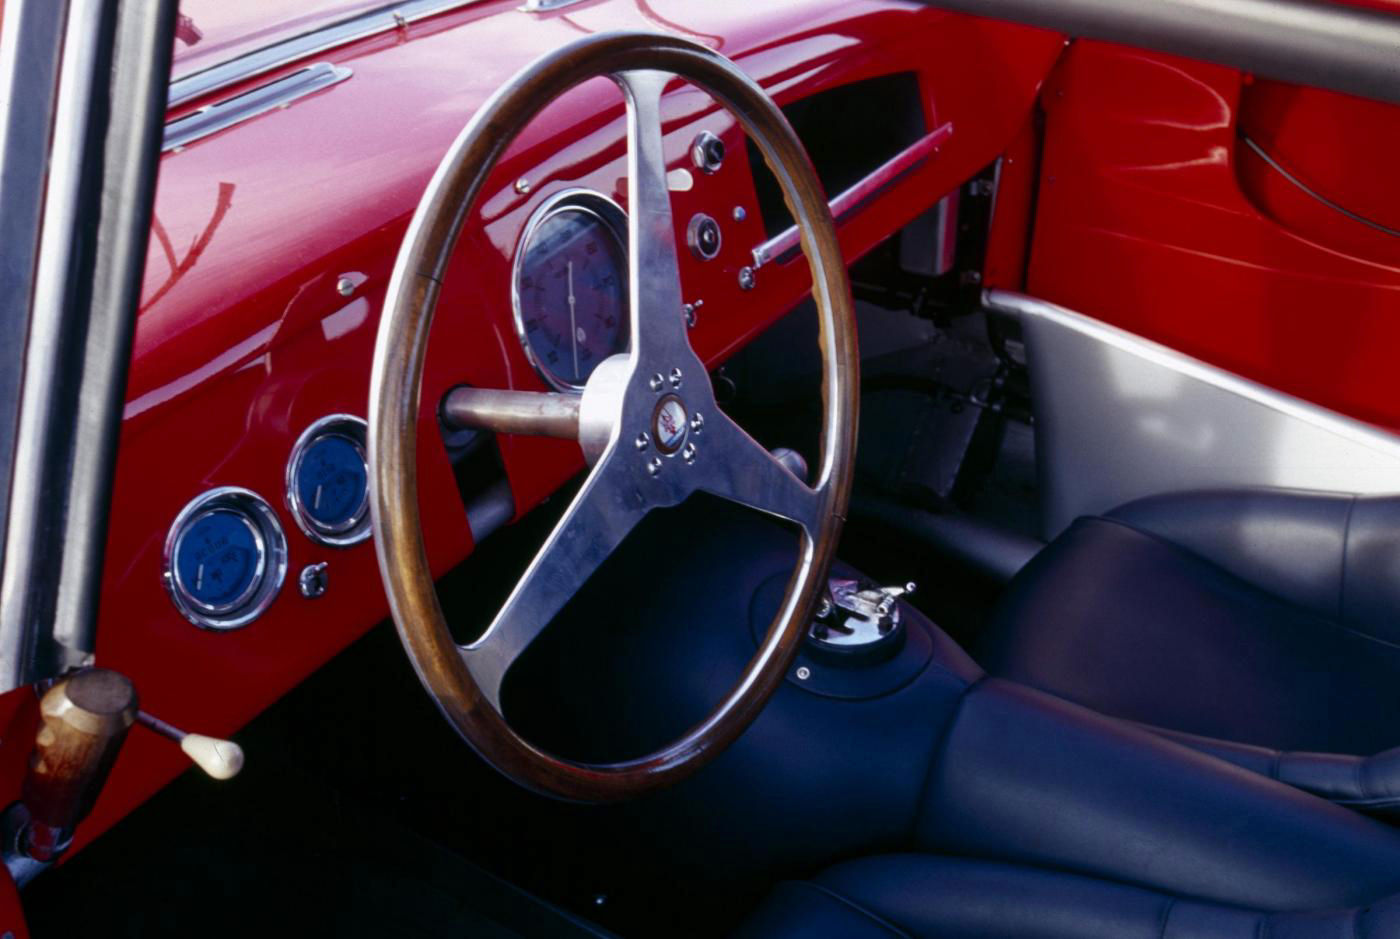 1953 Maserati 2000 Sport - A6GCS Berlinetta - interior view of the classic 2-seater